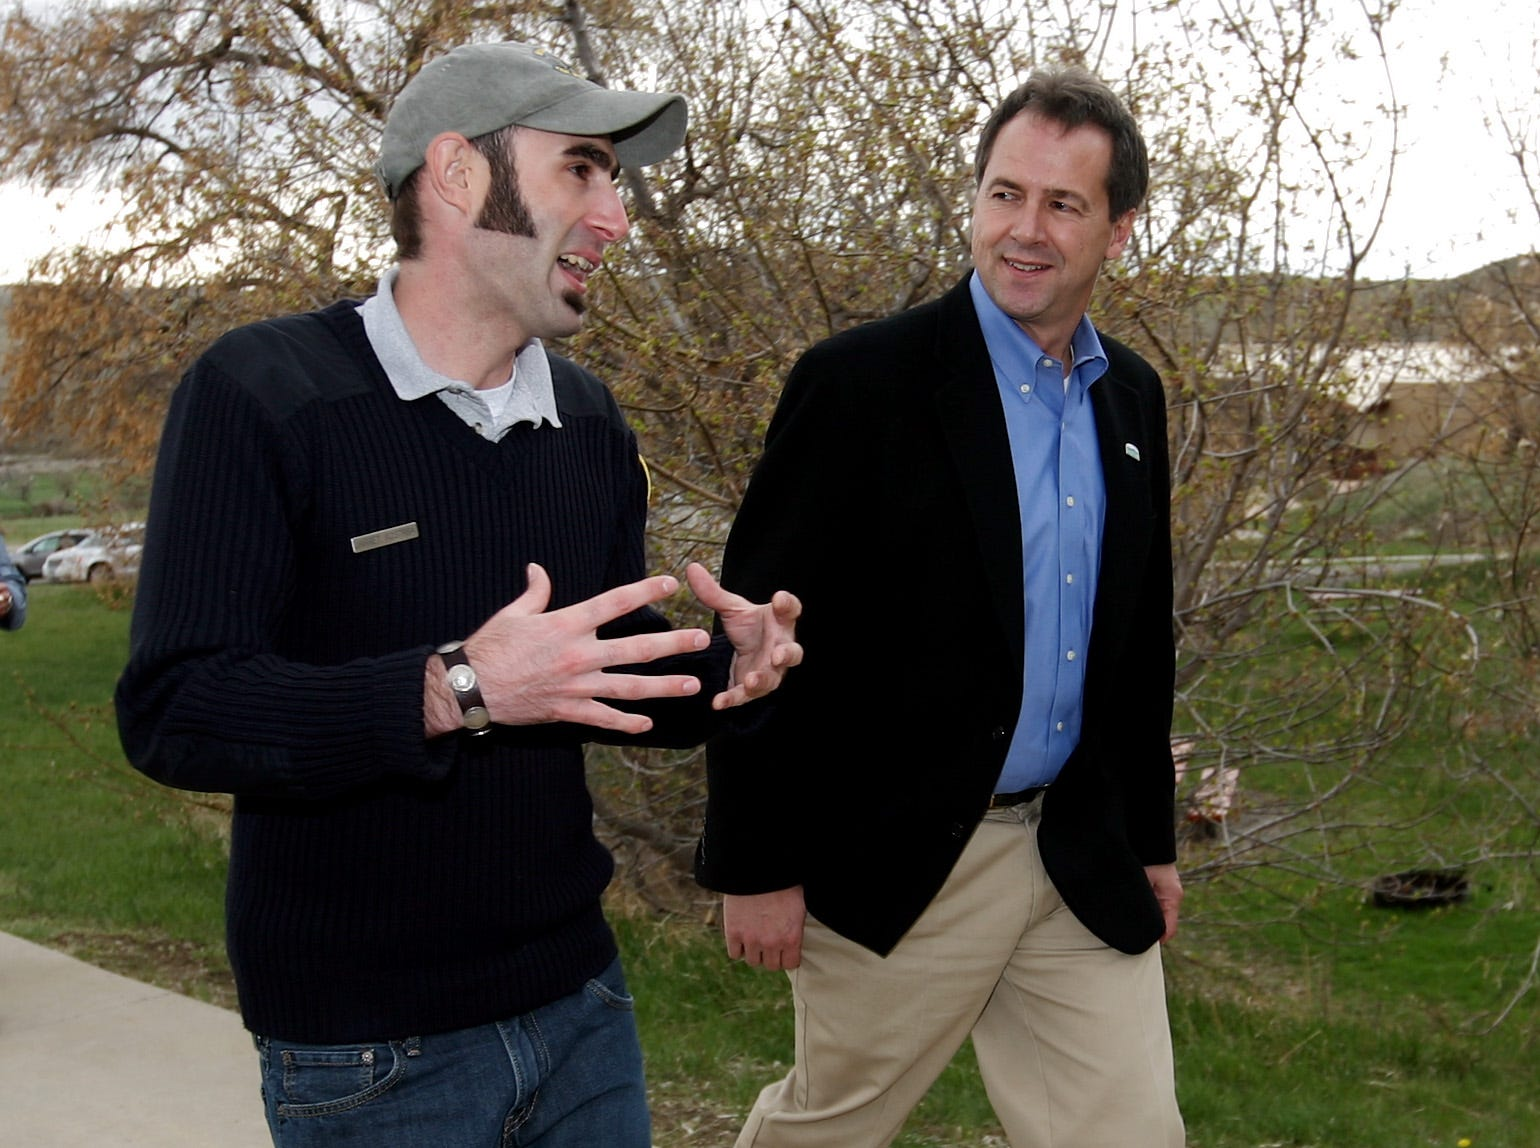 Park Manager Jarret Kostrba gives a tour of Pictograph Cave State Park to Montana Gov. Steve Bullock on Monday, April 29, 2013. Bullock signed a bill into law Monday that creates a new Montana State Parks and Recreation Board separate from the Montana Fish, Wildlife and Parks Commission. Photo courtesy of Montana State Parks